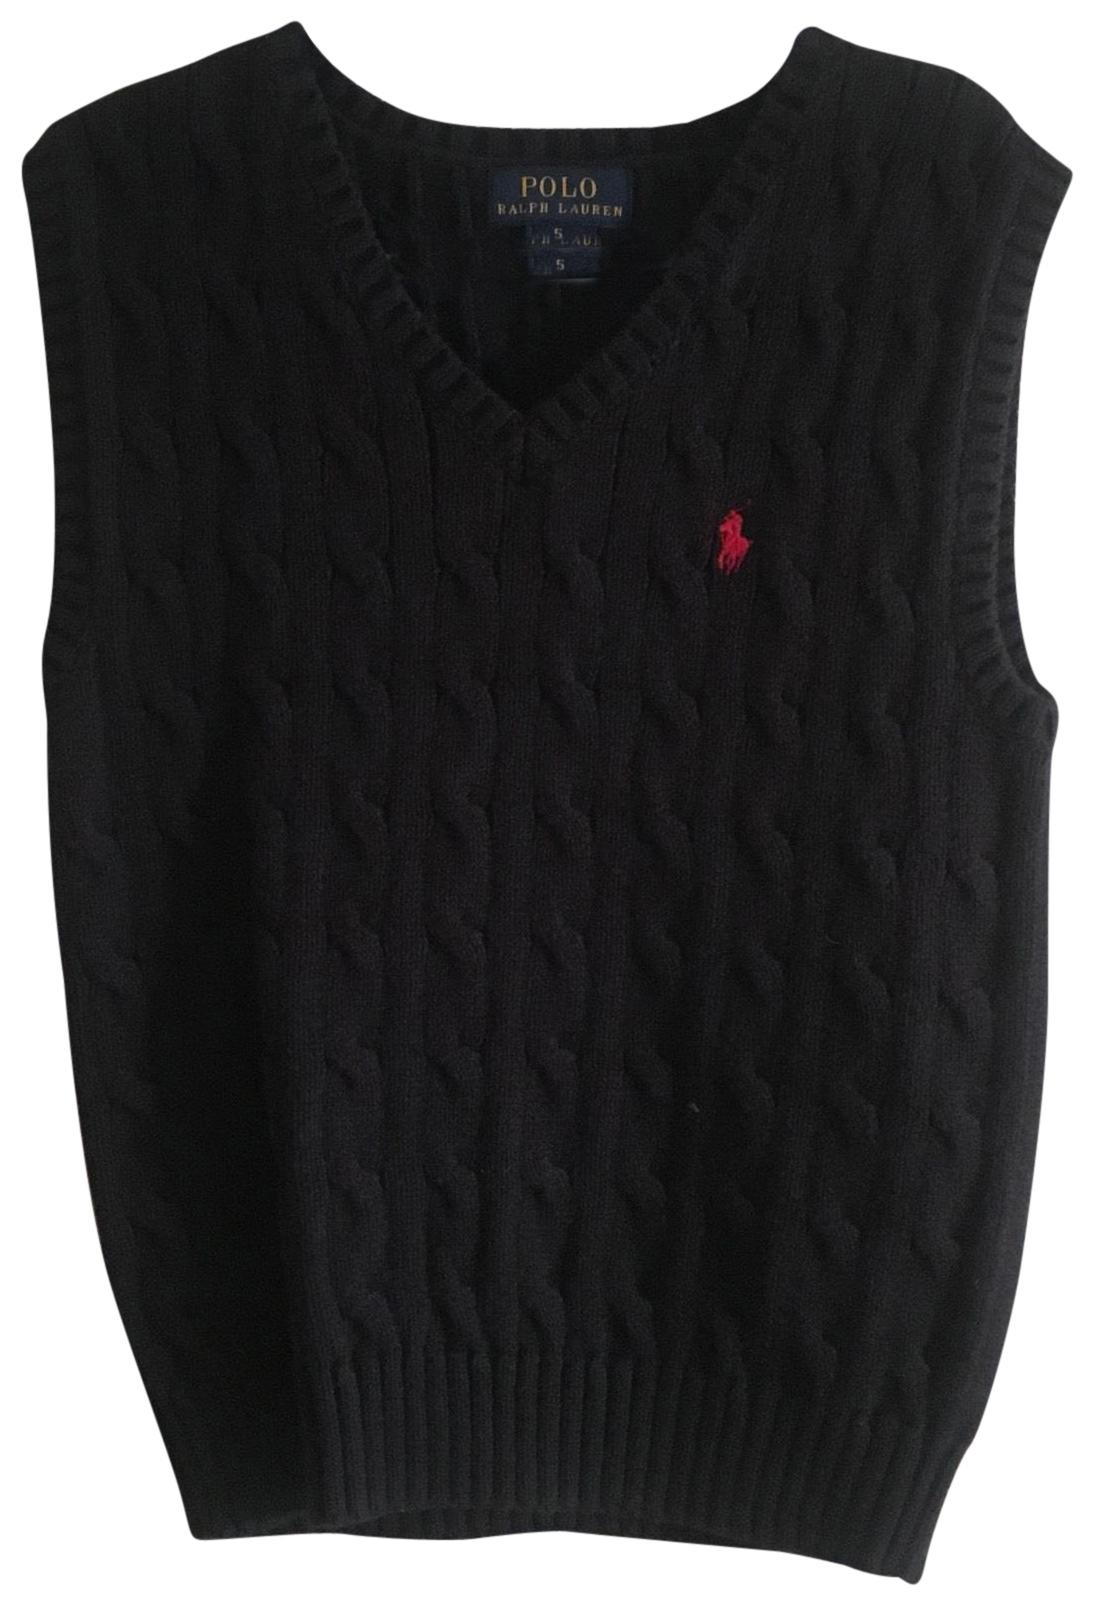 Polo Ralph Lauren Sweater ...